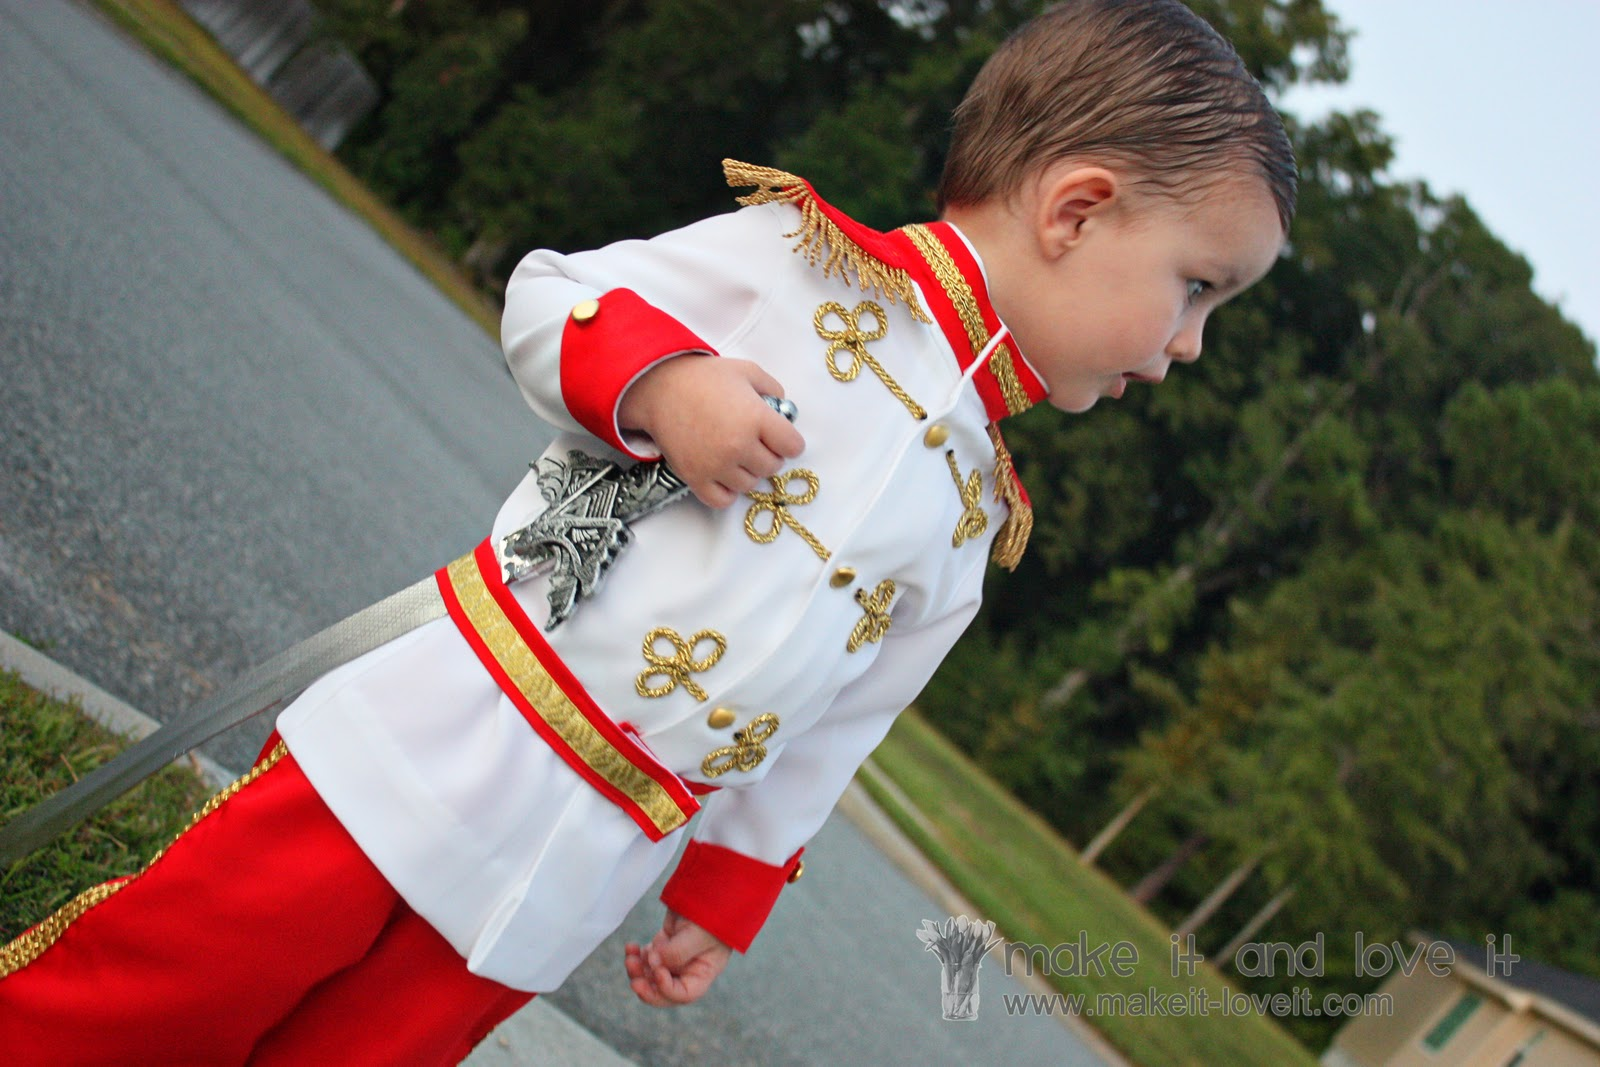 Prince charming costume tutorial from cinderella make it and love it solutioingenieria Images